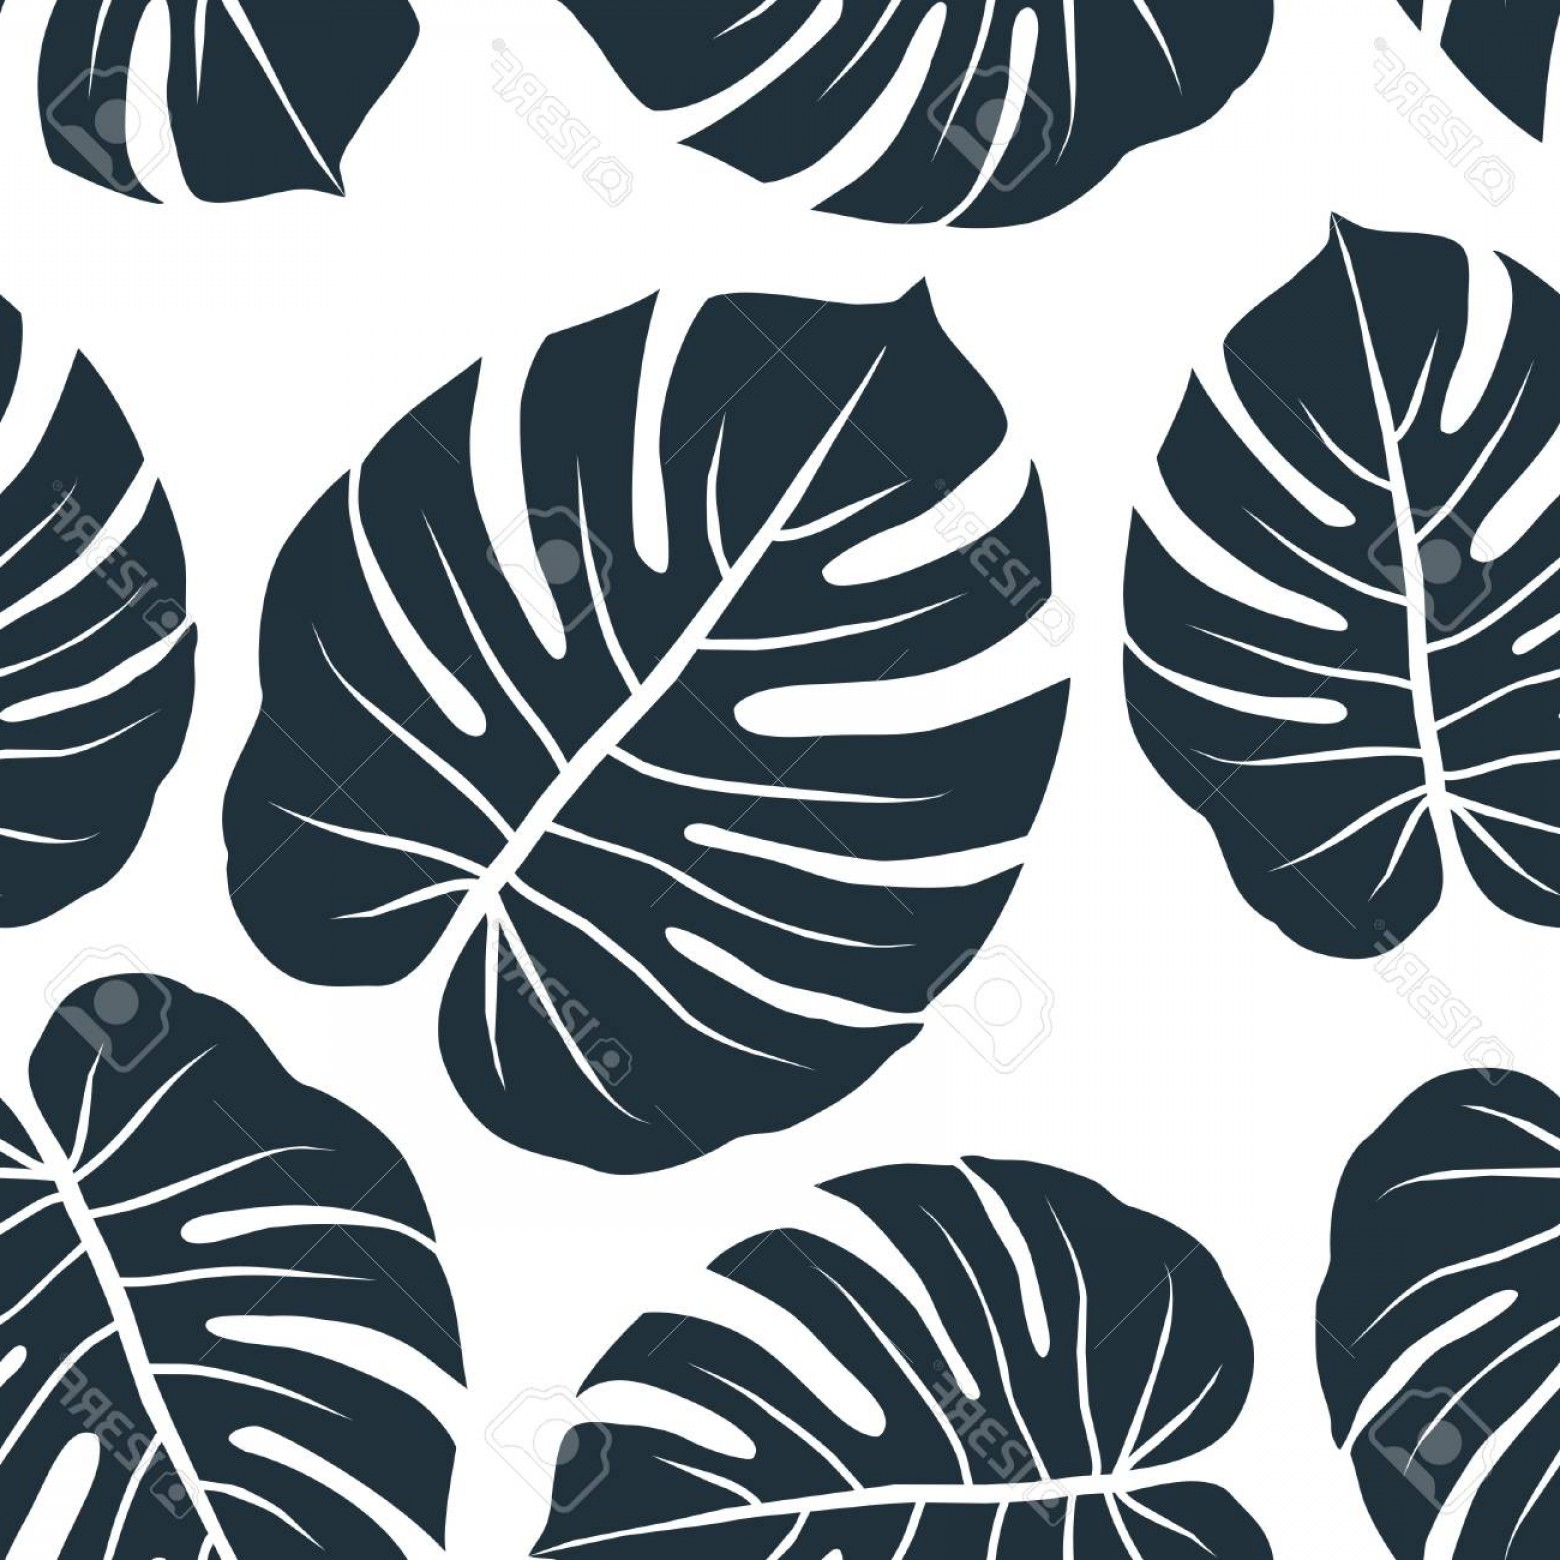 Vector Leaf Graphicd: Photostock Vector Dark Monstera Leaves Graphic Abstract Seamless Pattern On White Background